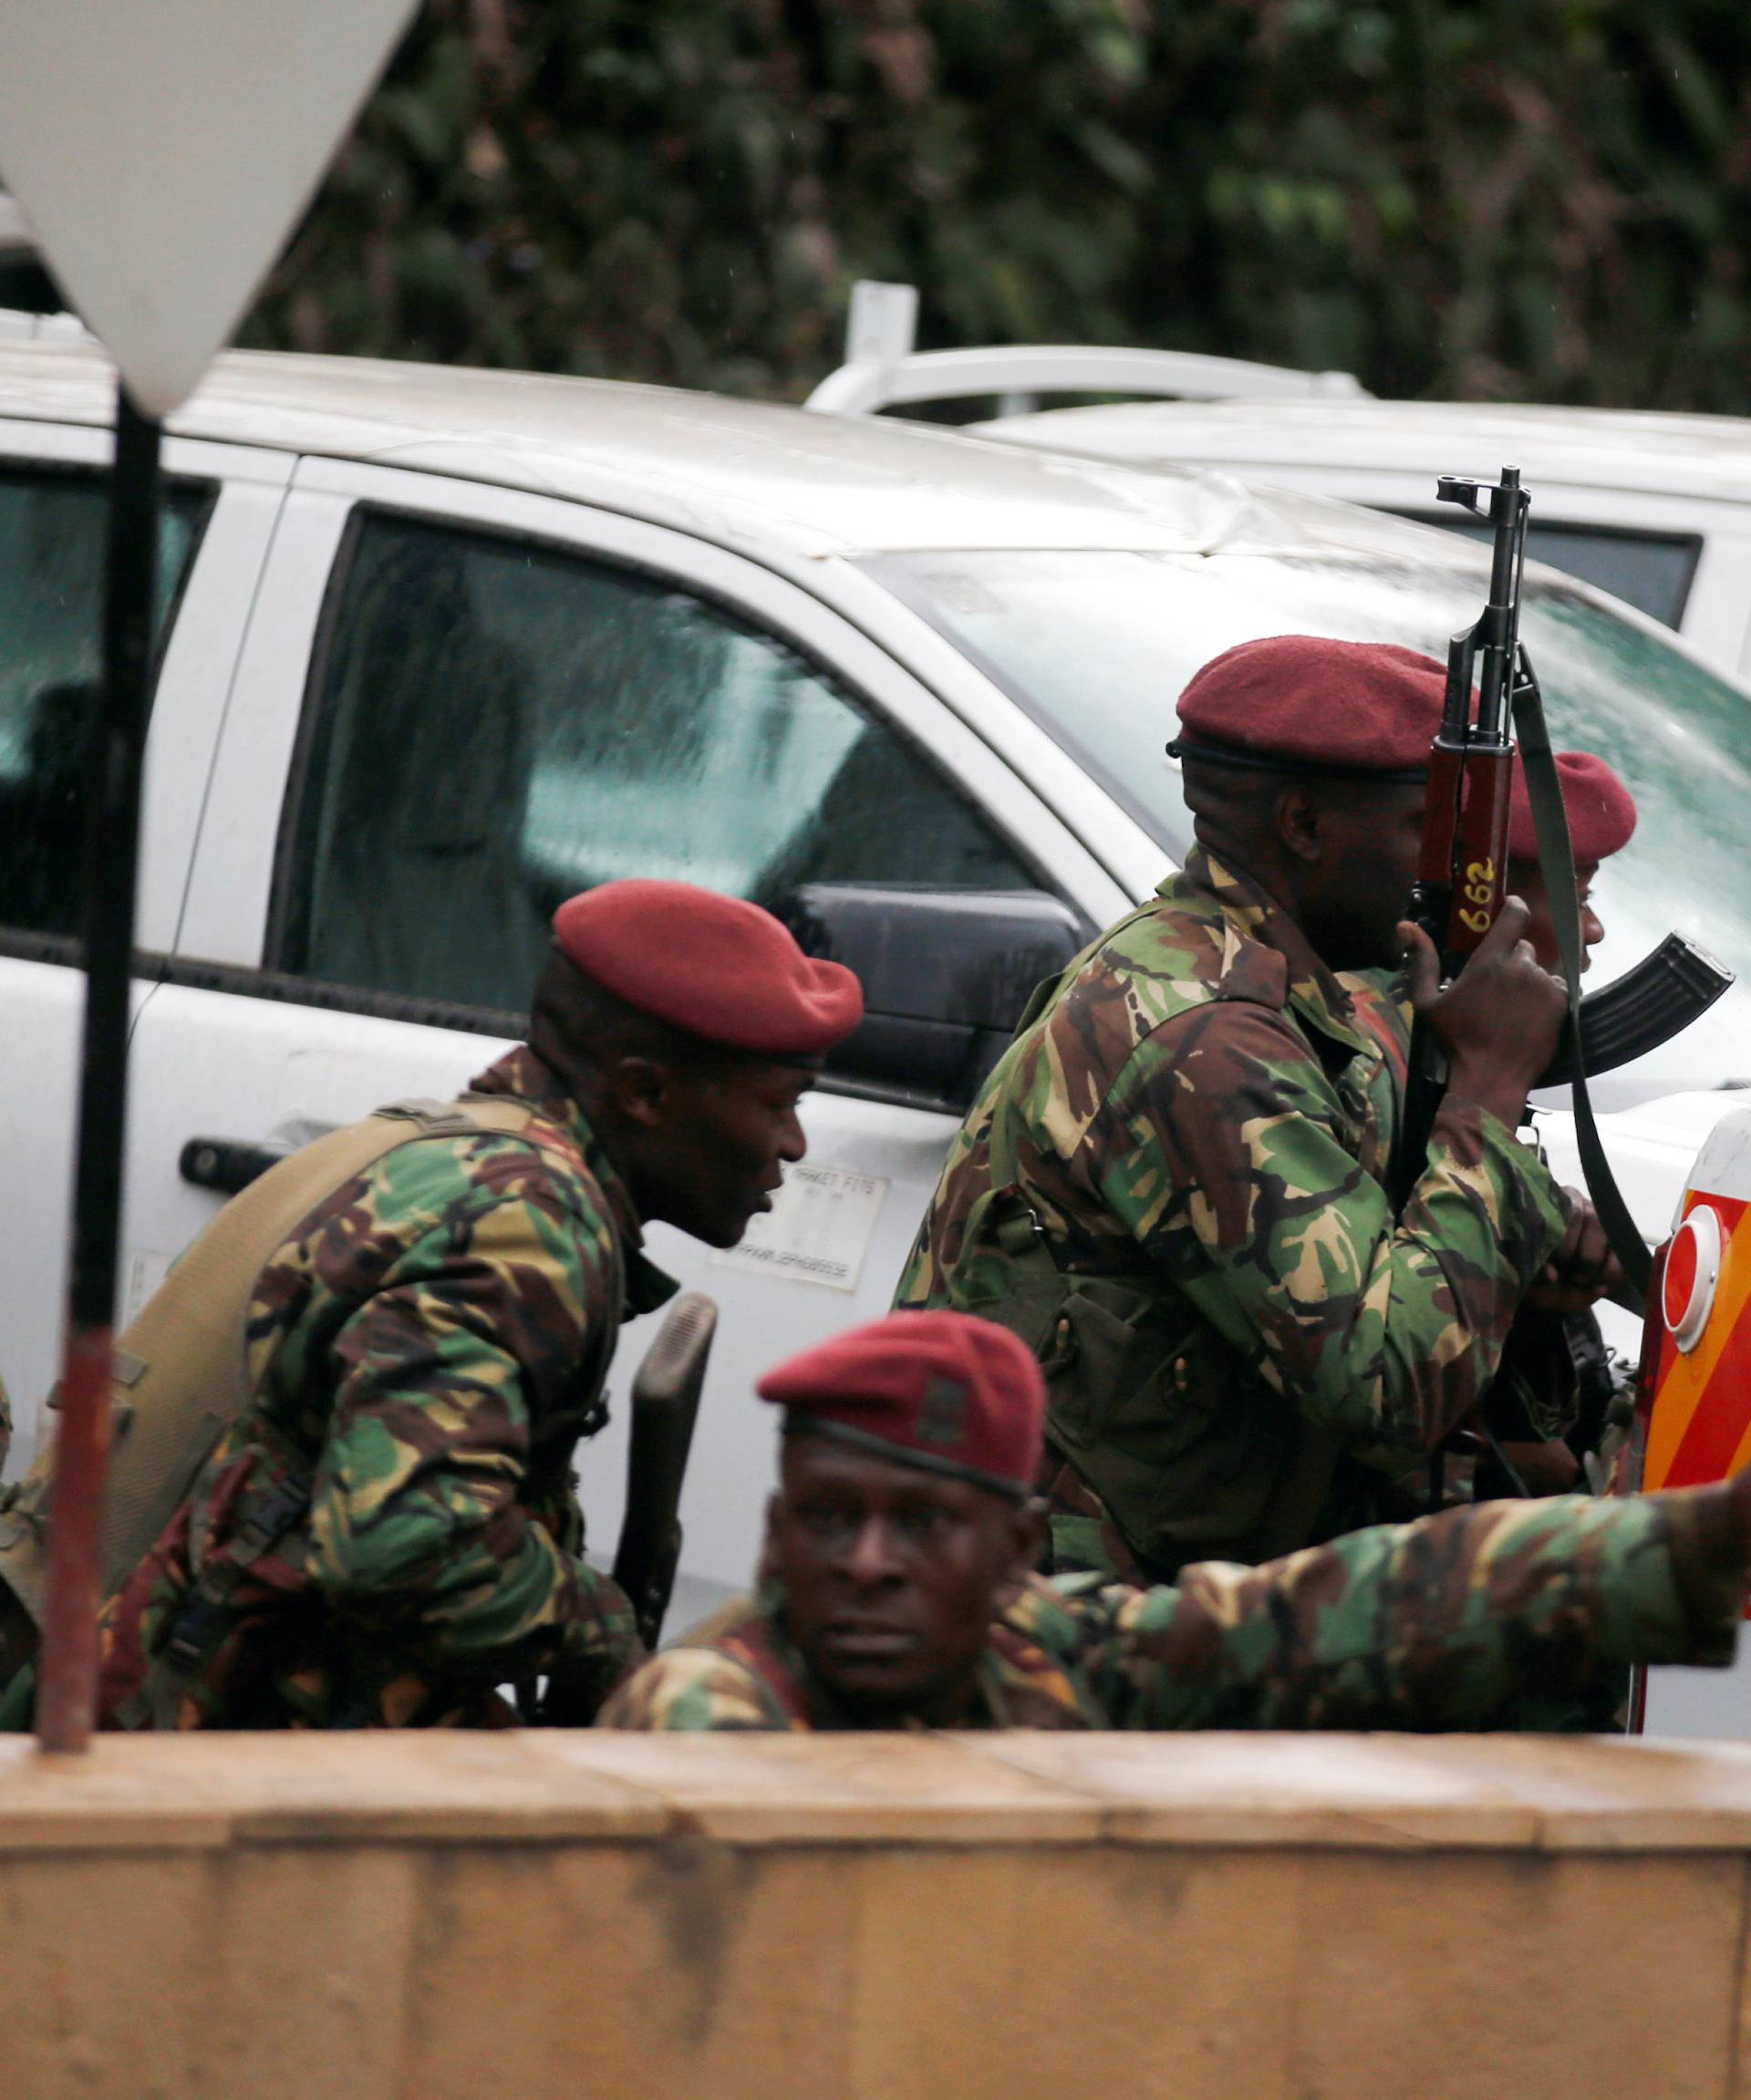 Members of security forces take positions at the scene where explosions and gunshots were heard at the Dusit hotel compound, in Nairobi